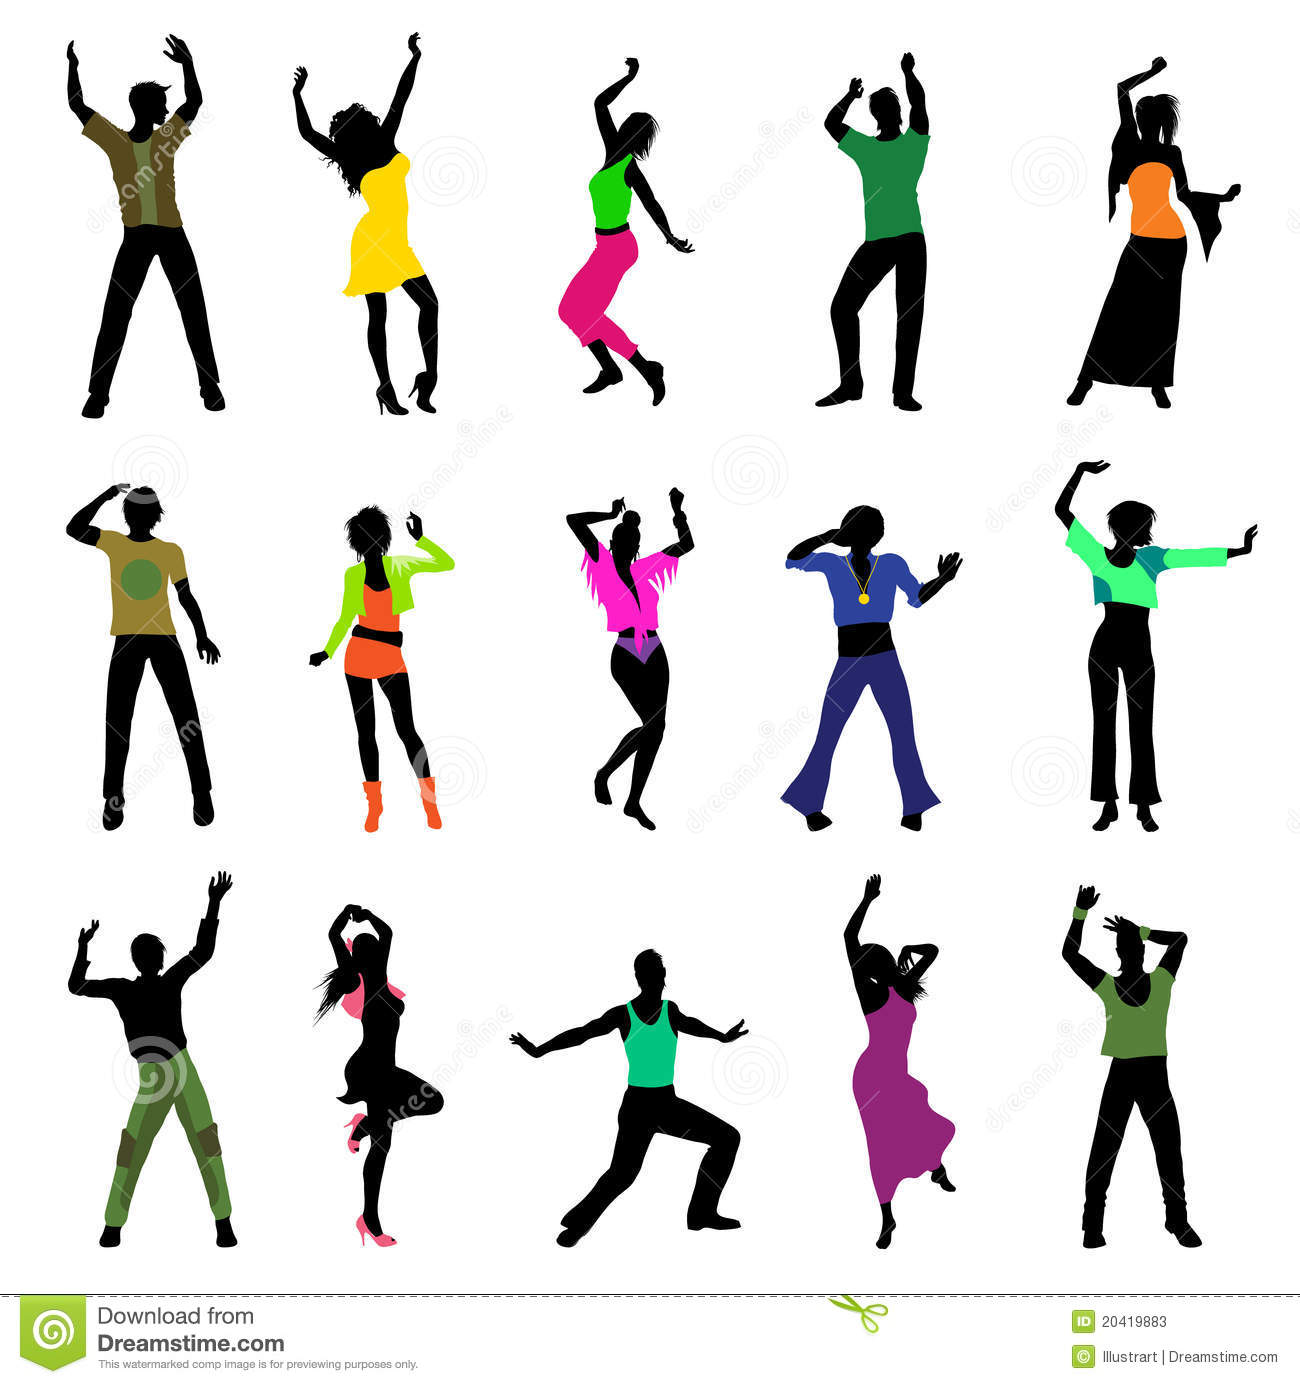 More similar stock images of ` Dancing people silhouettes `